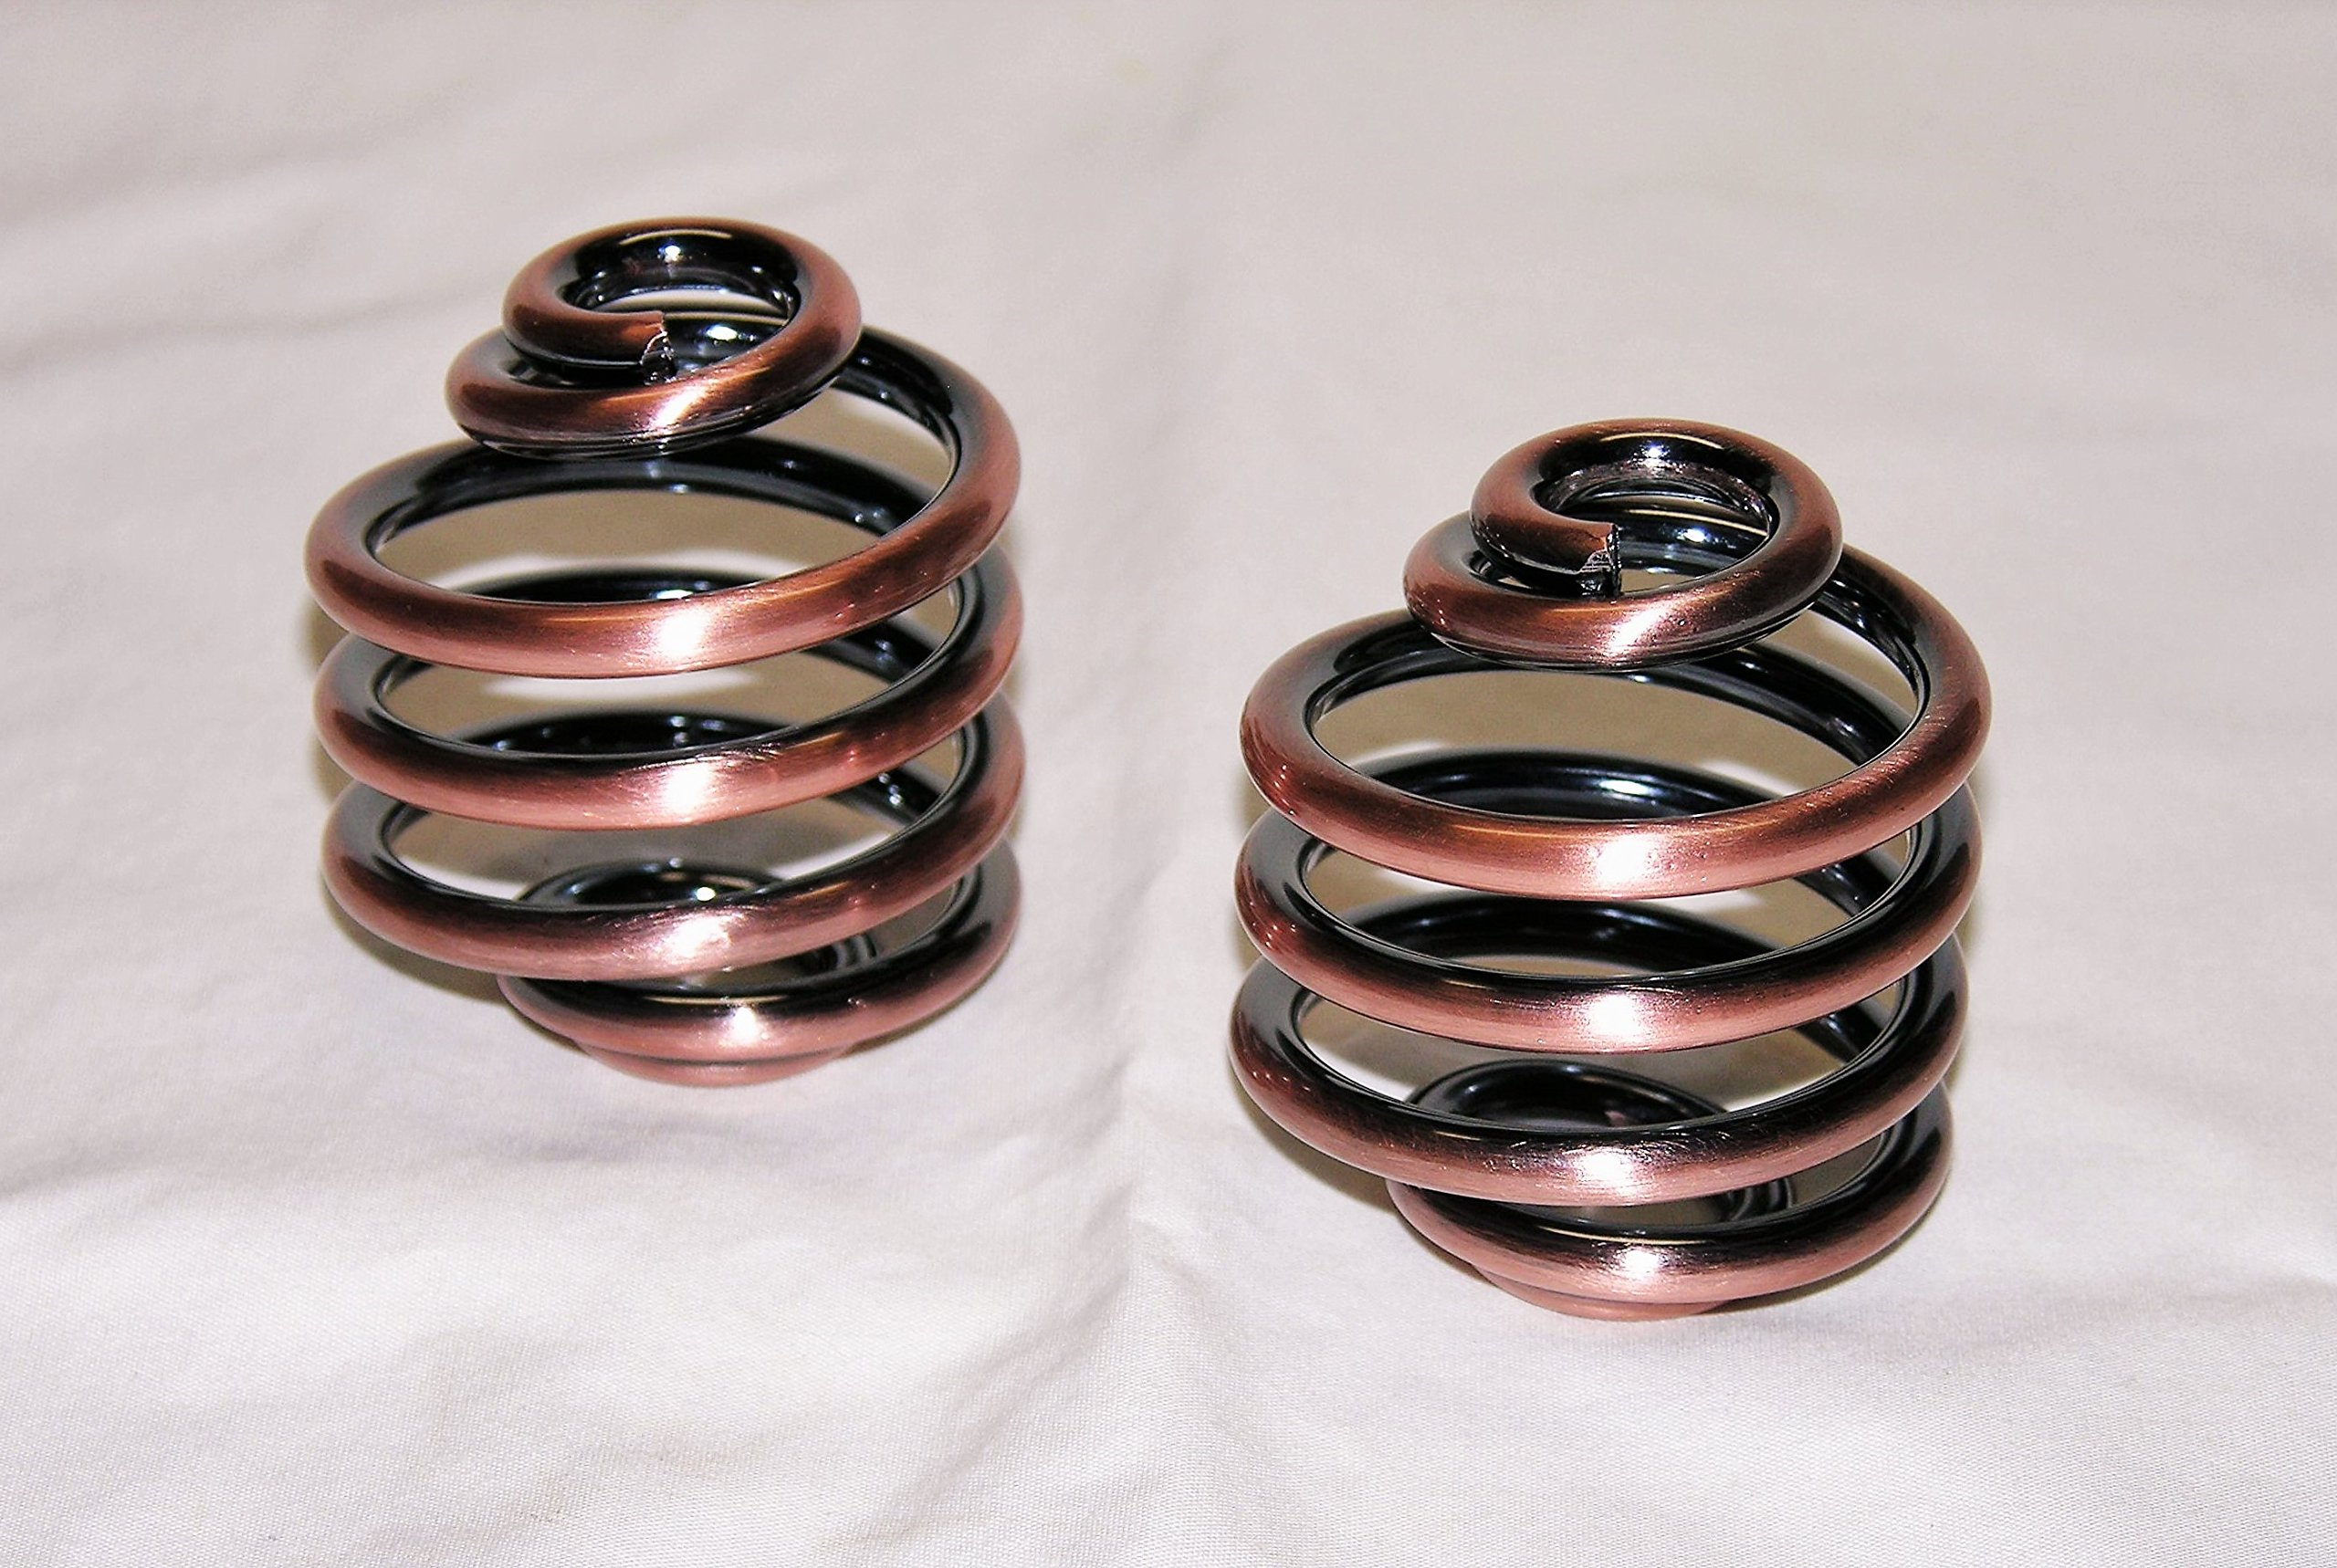 Mr Luckys Universal Fit Antique Copper 2 inch Solo Seat Springs for Harley, Bobber, Vintage, Retro, Custom.